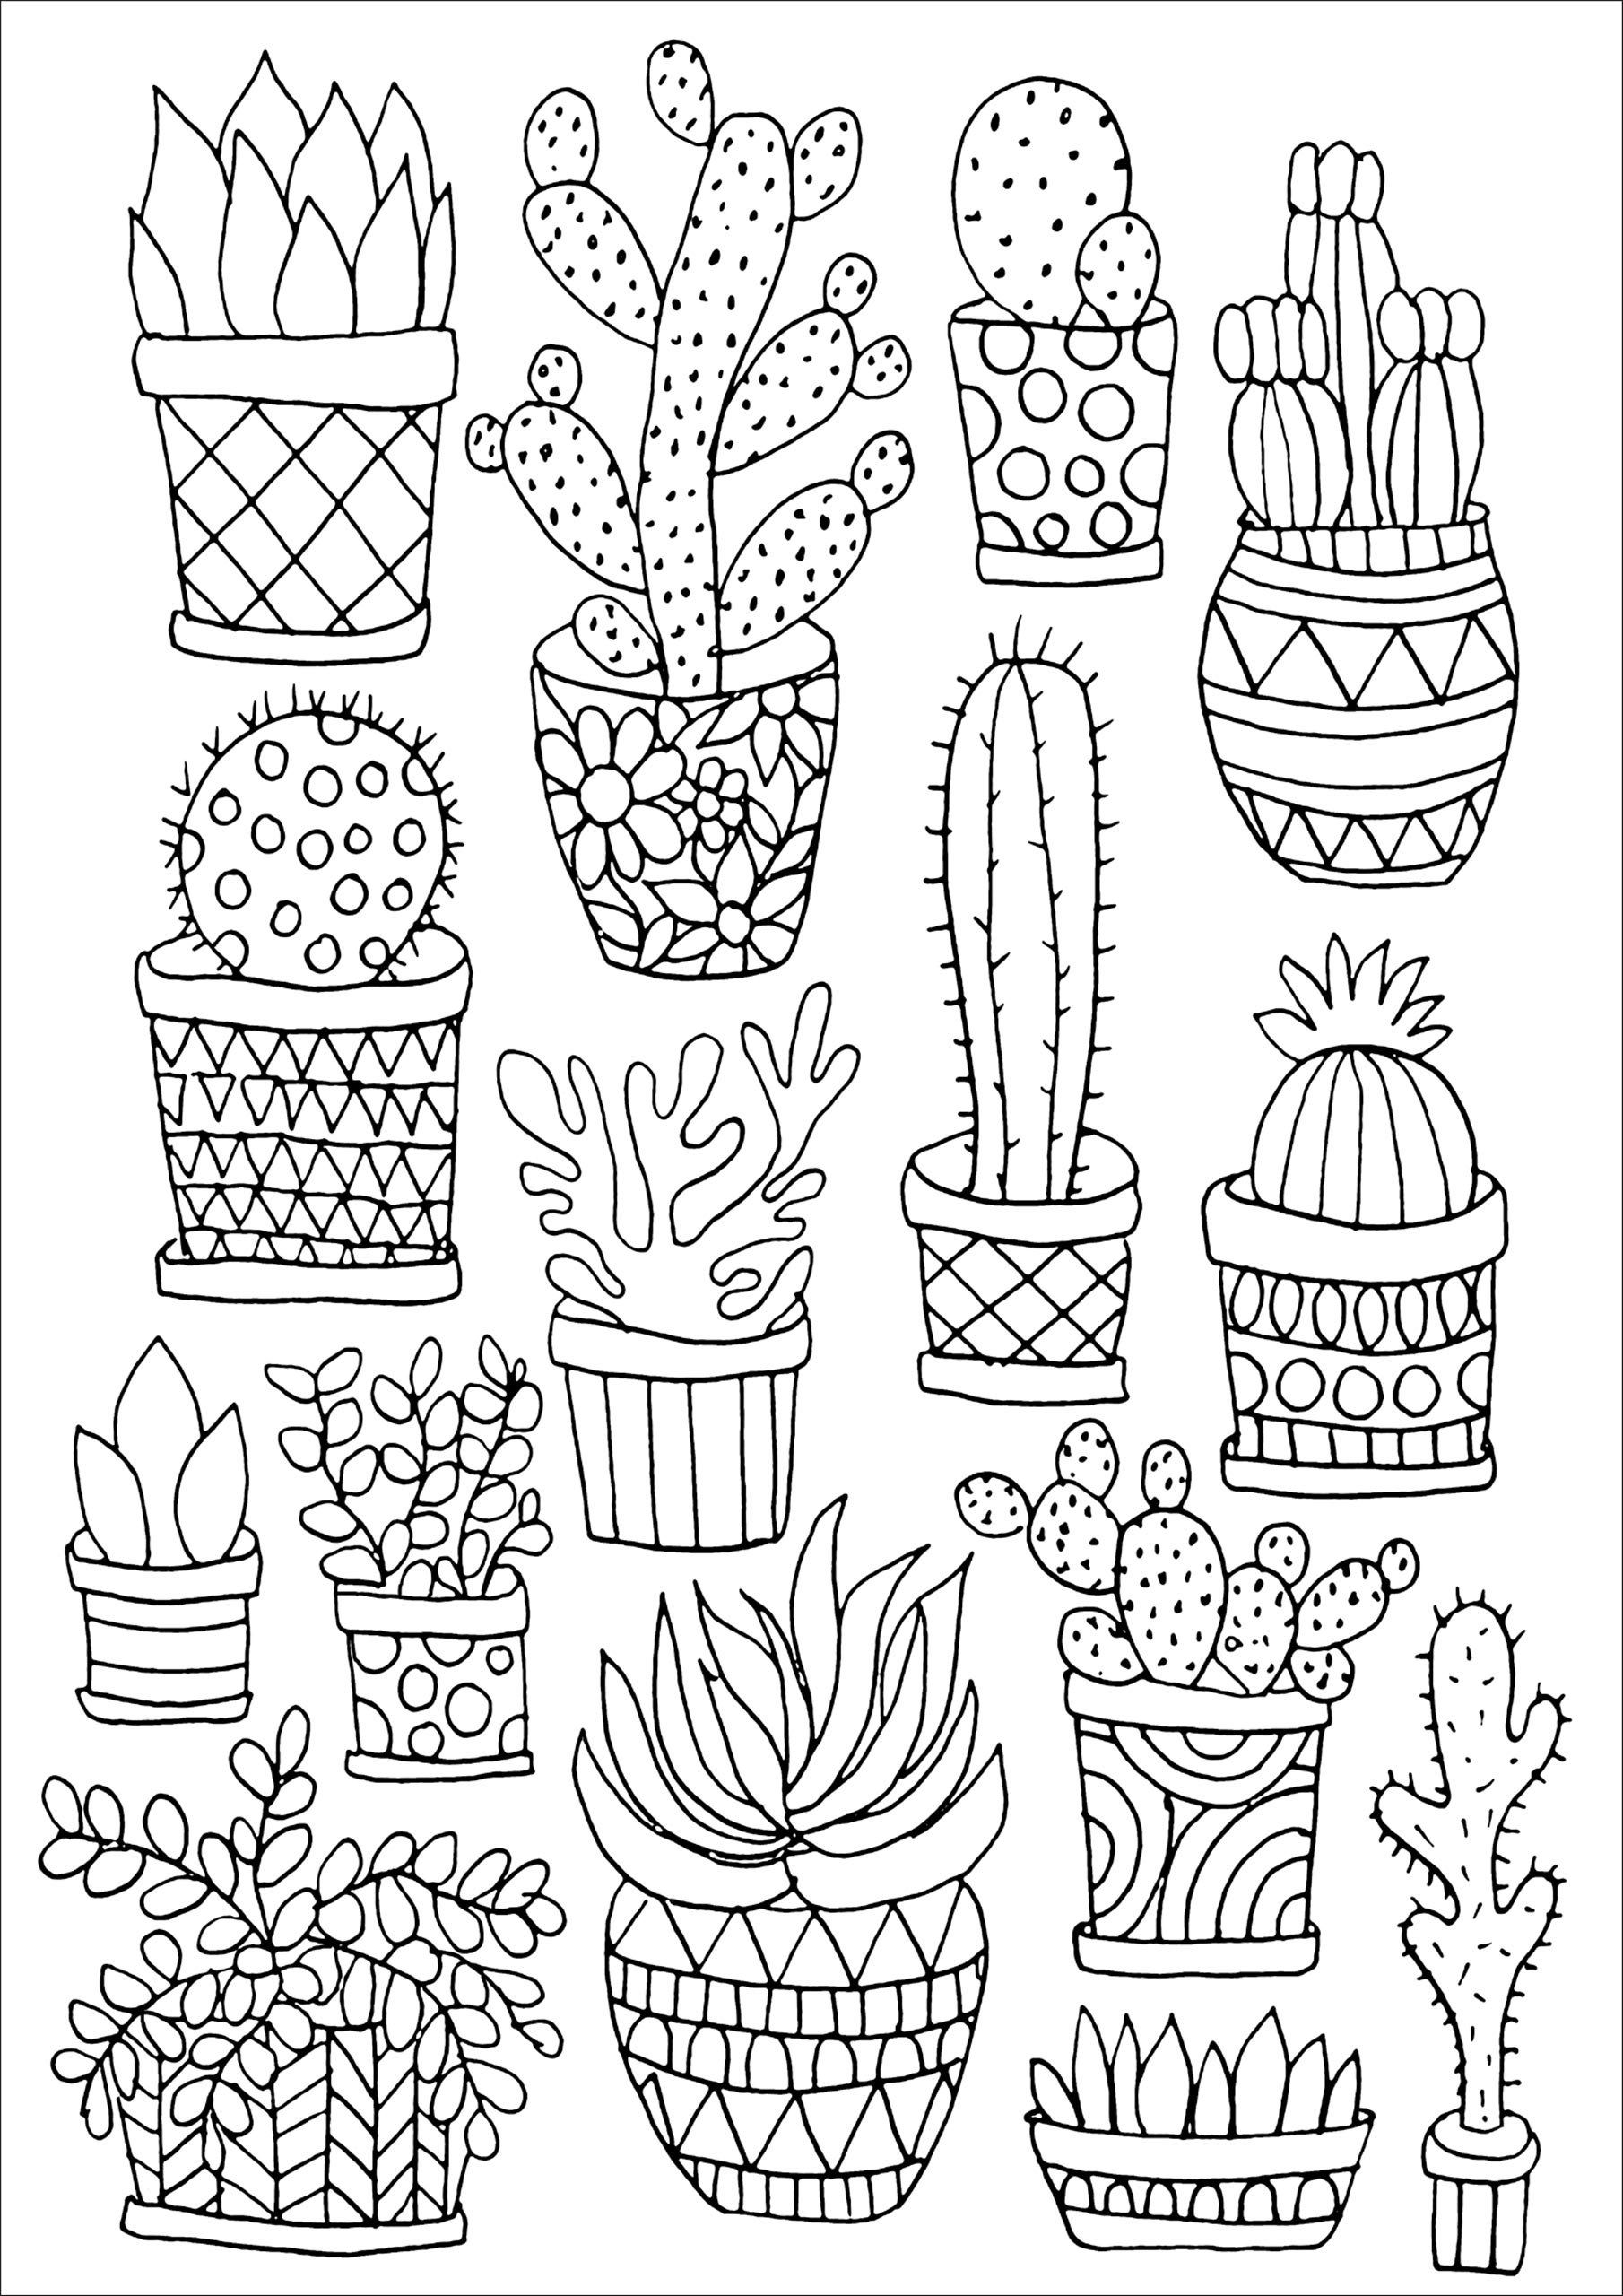 AmazonSmile: Succulents Portable Adult Coloring Book (31